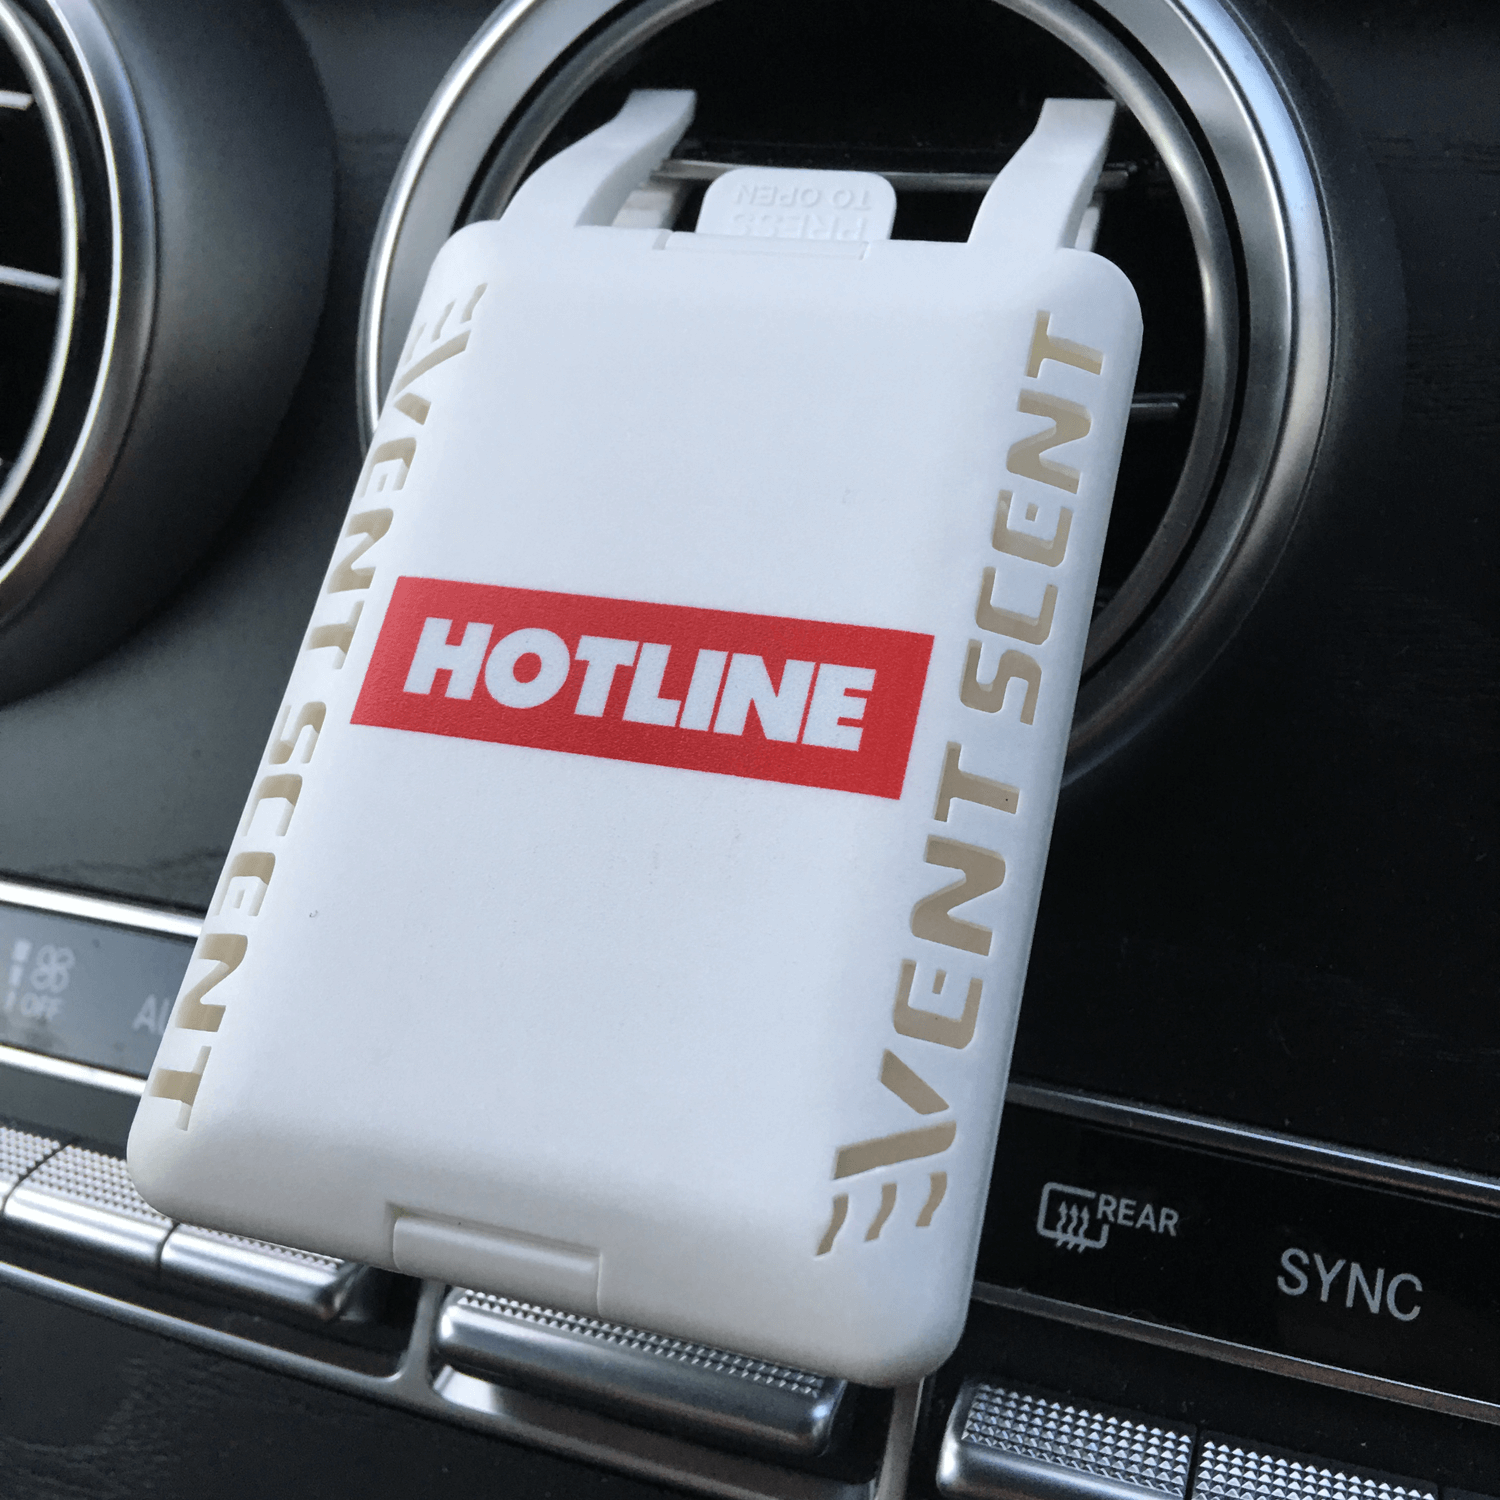 Printed Vent Scent Car Air Freshener